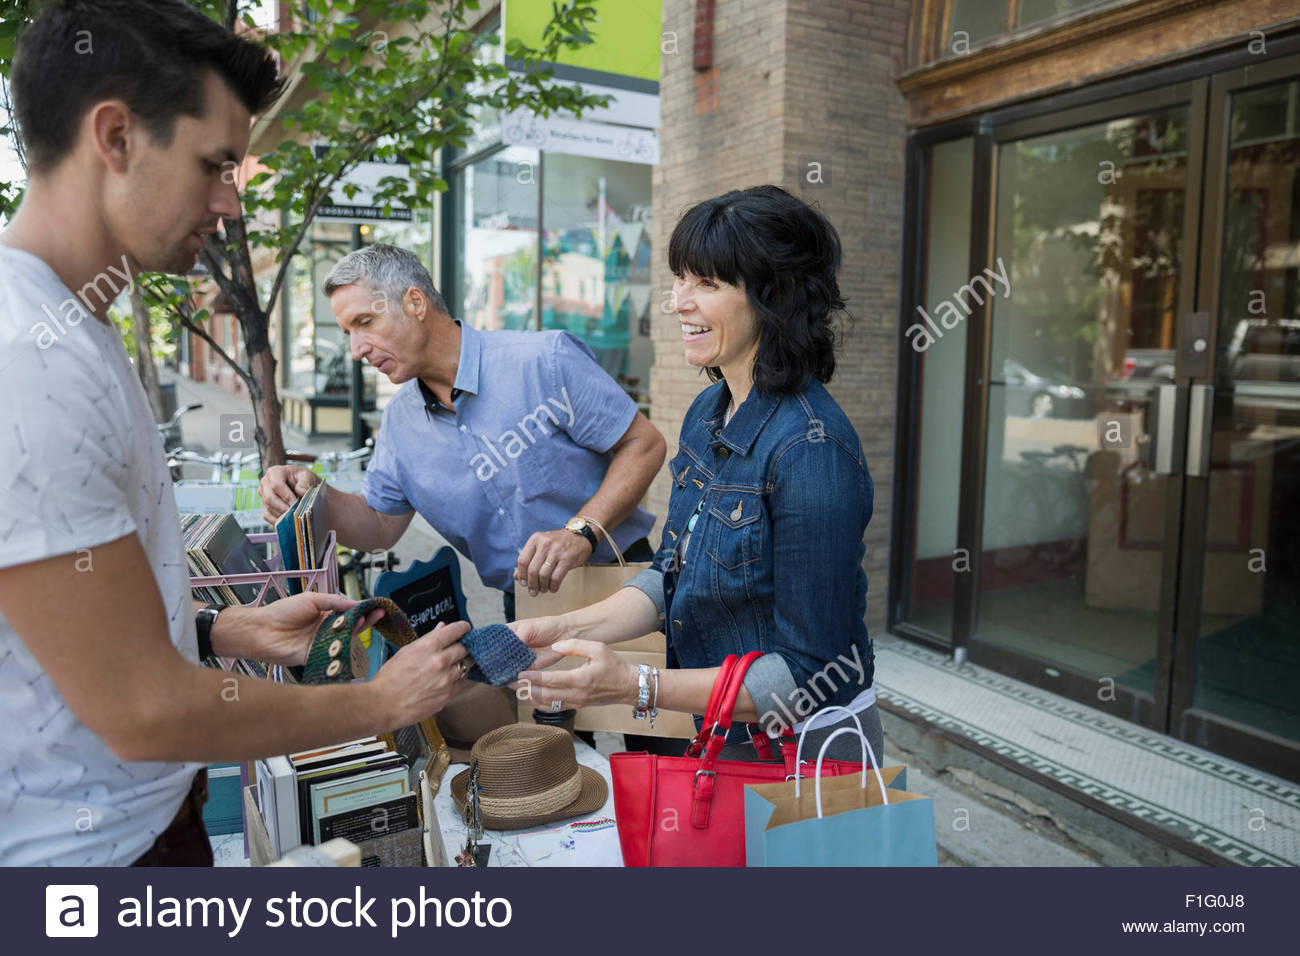 Woman shopping vente-trottoir Photo Stock